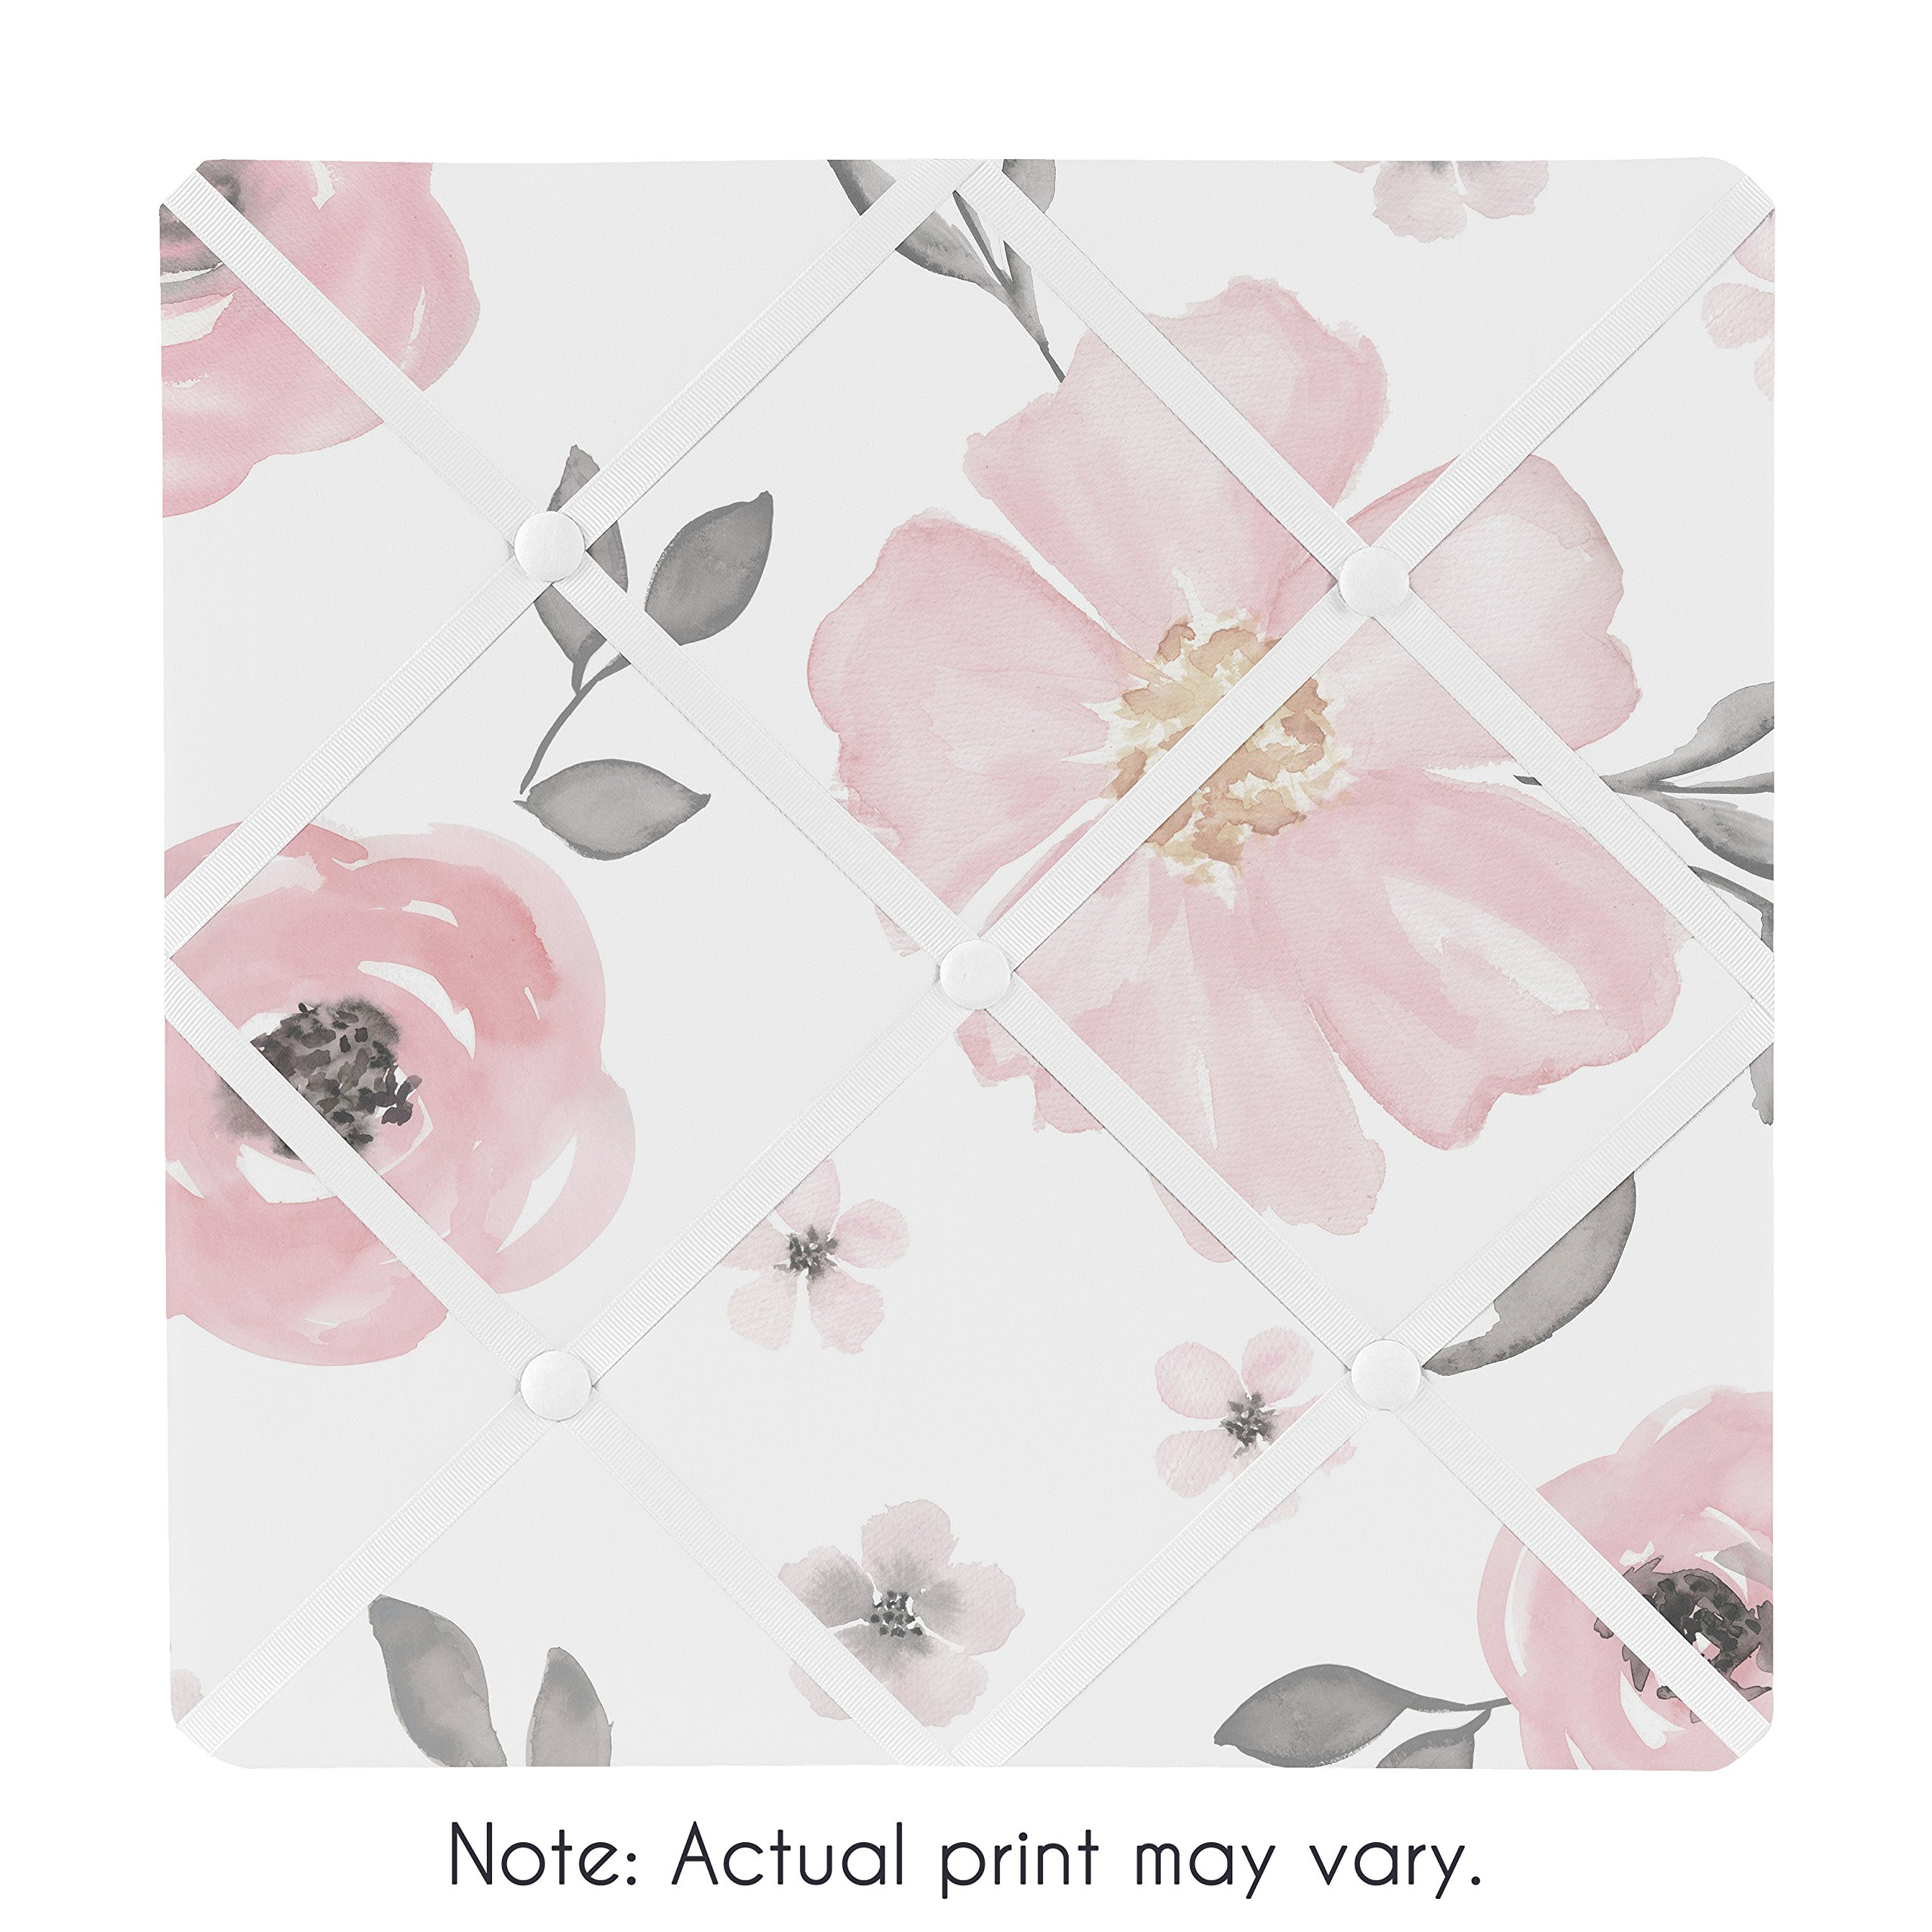 Sweet Jojo Designs Blush Pink, Grey and White Fabric Memory Memo Photo Bulletin Board for Watercolor Floral Collection by Sweet Jojo Designs